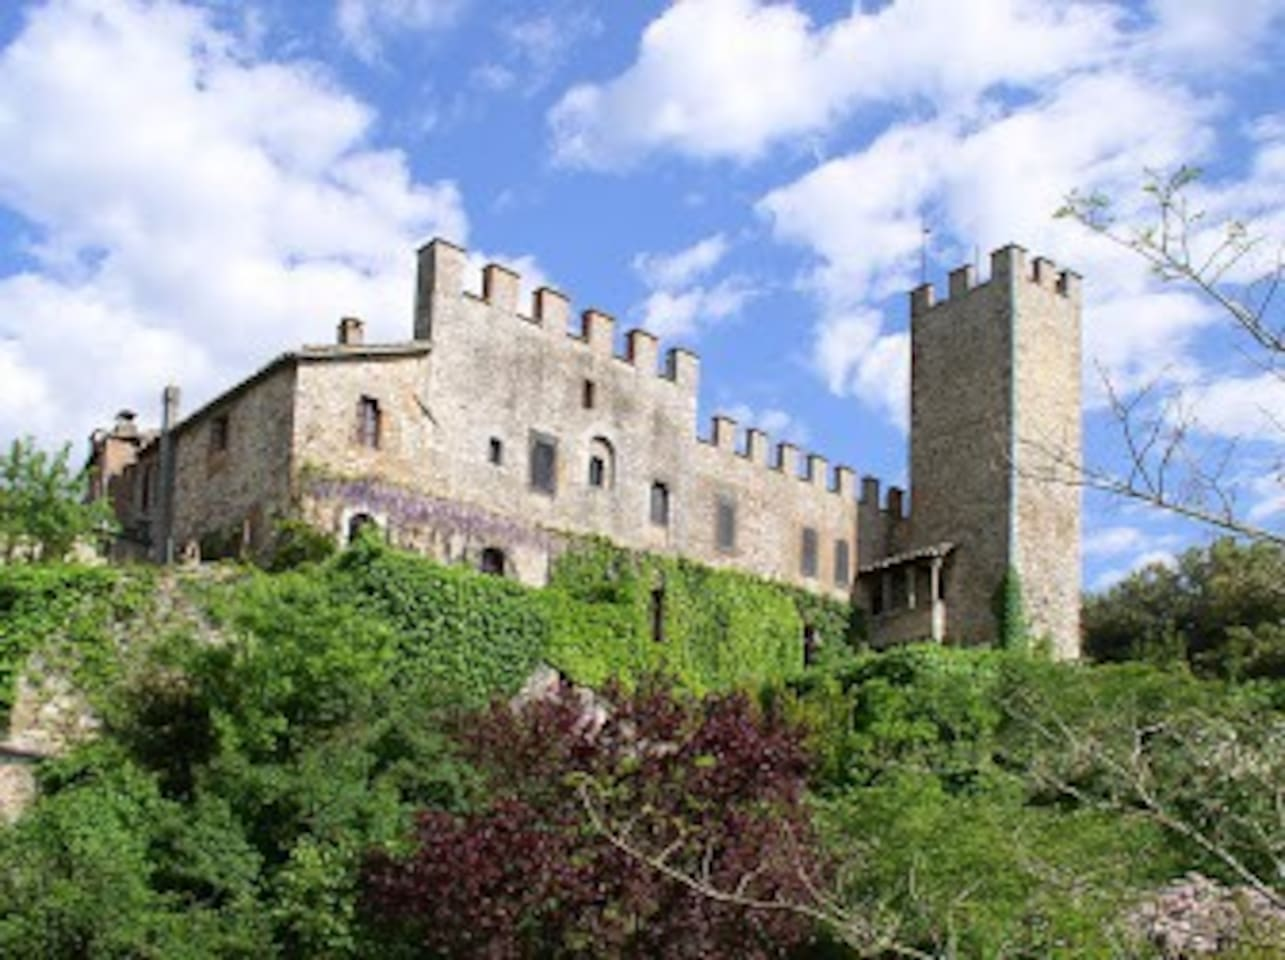 Montalto Castle offers three 1-bedroom villas for rent, each suitable for 1 or 2 people. San Martino , Scuola and Voliera